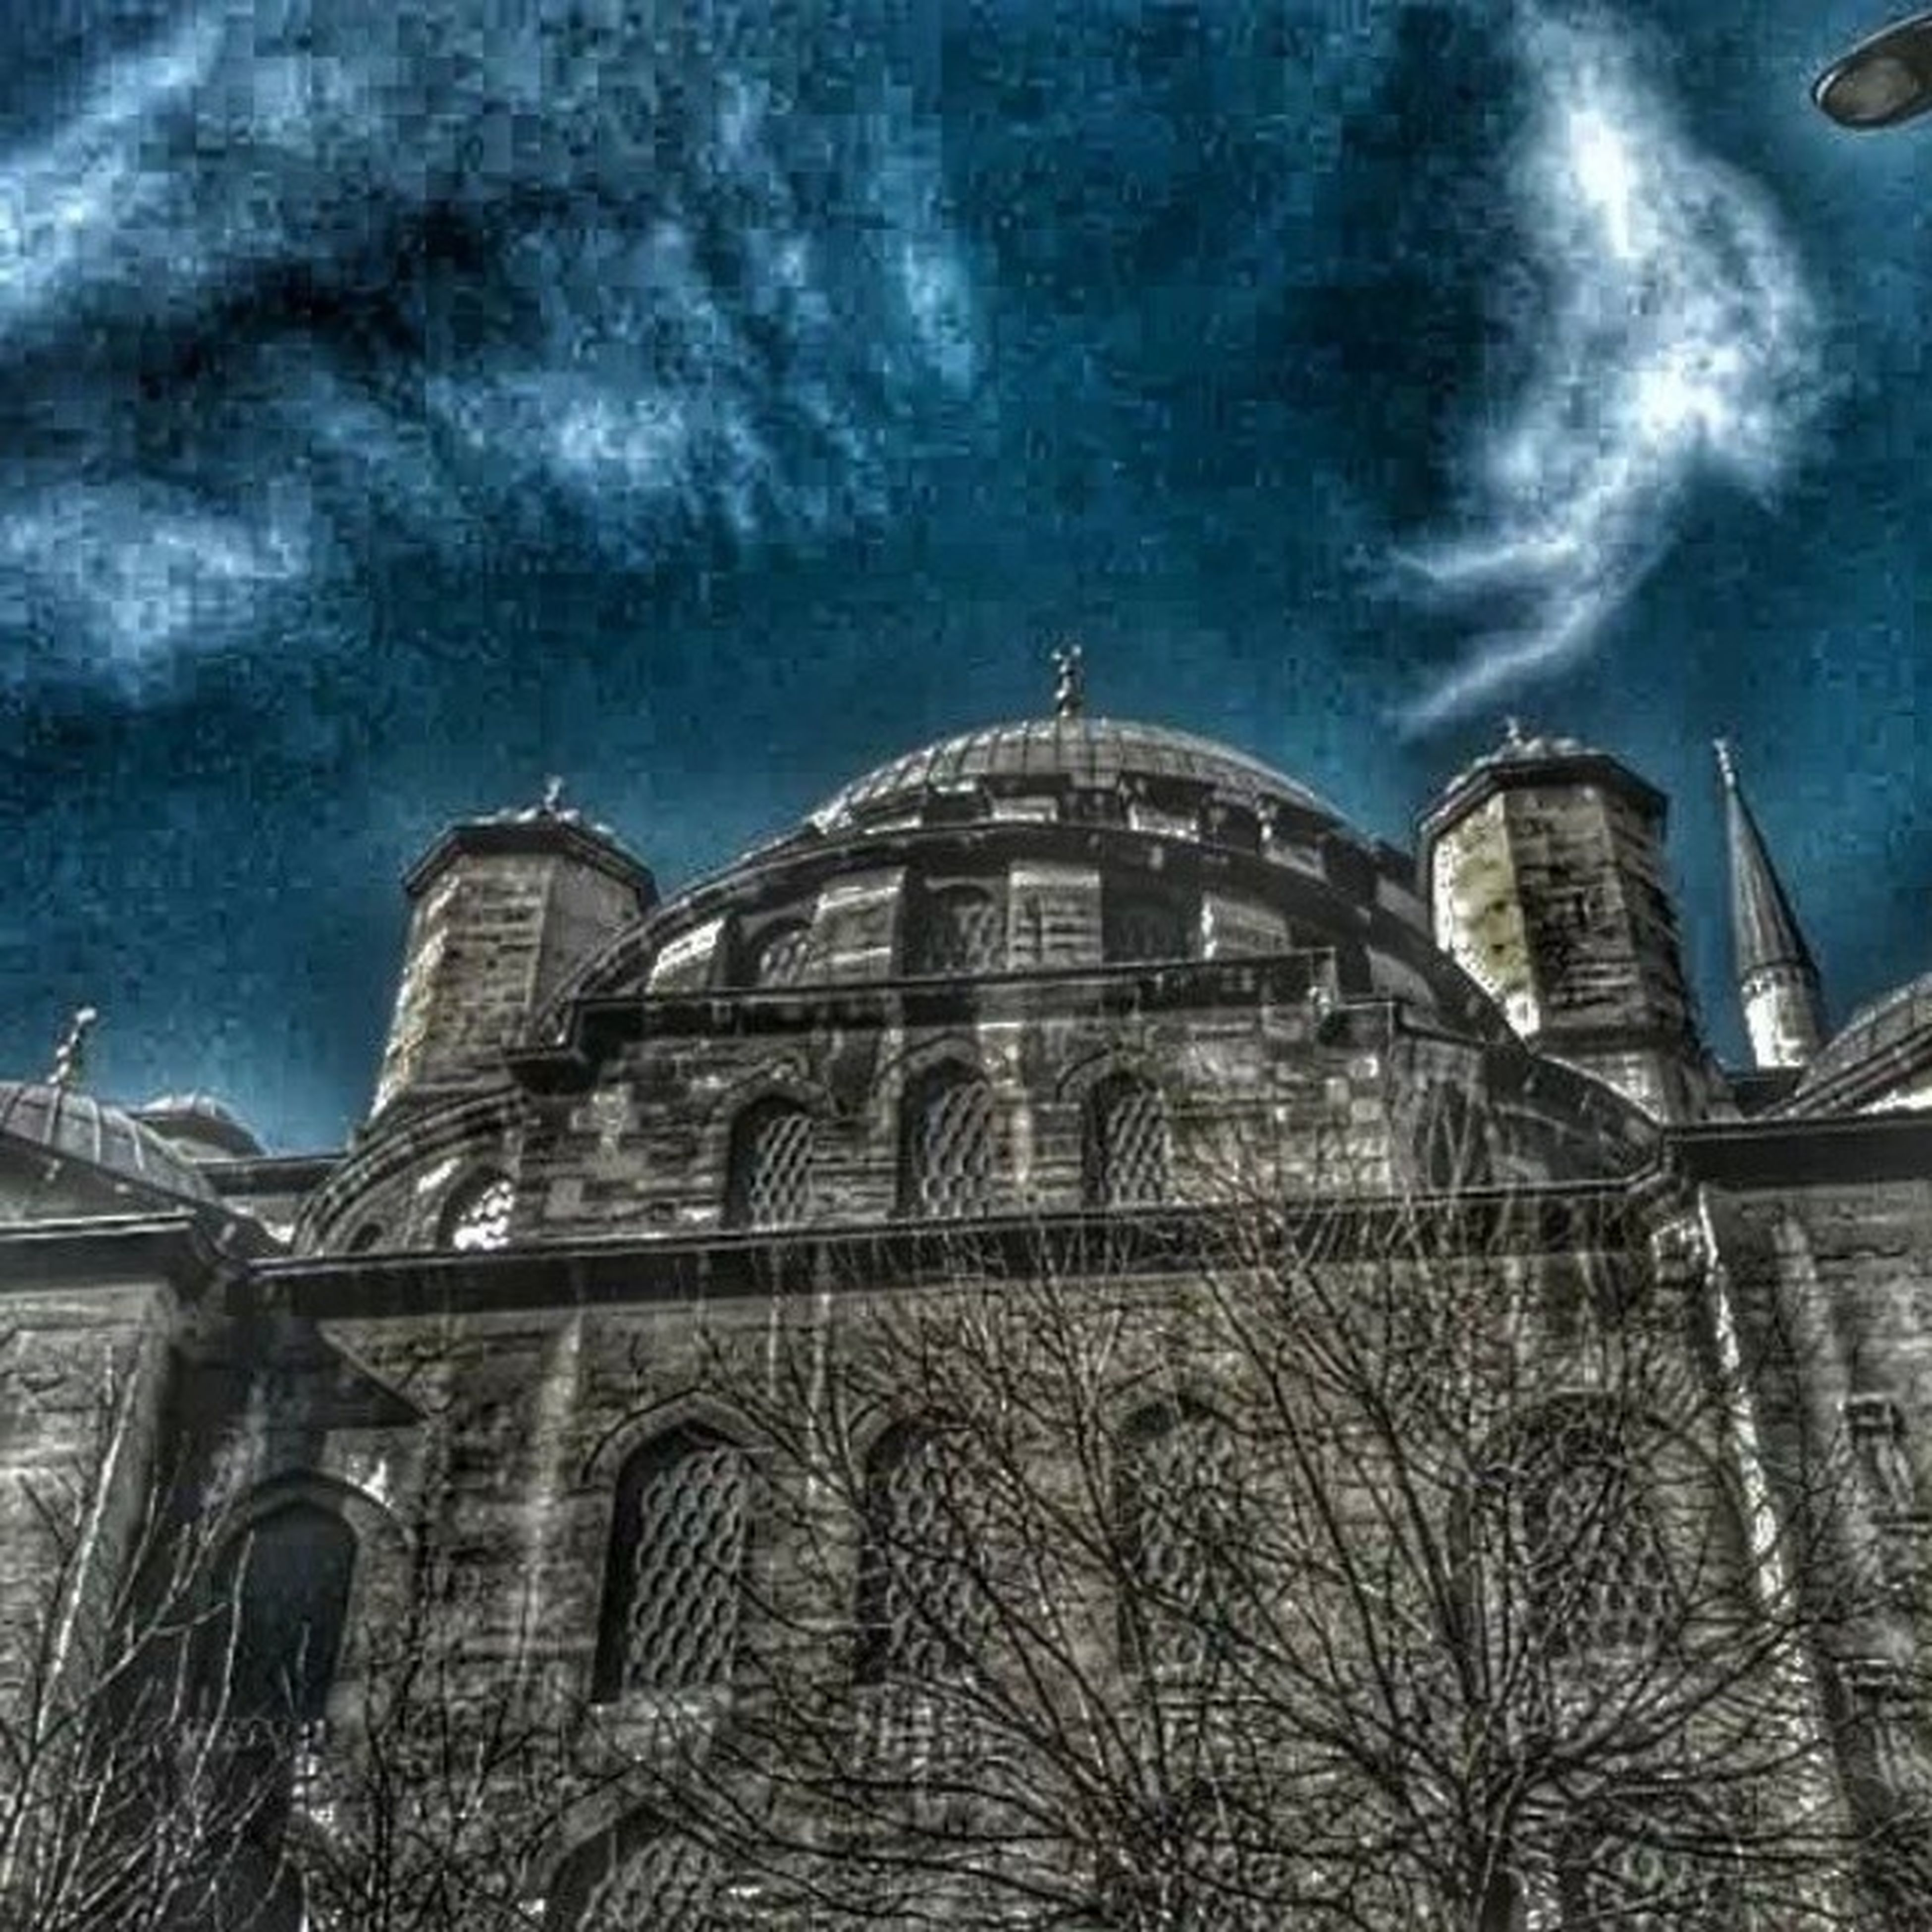 architecture, built structure, building exterior, sky, low angle view, cloud - sky, cloudy, church, arch, cloud, religion, place of worship, building, history, window, day, no people, old, outdoors